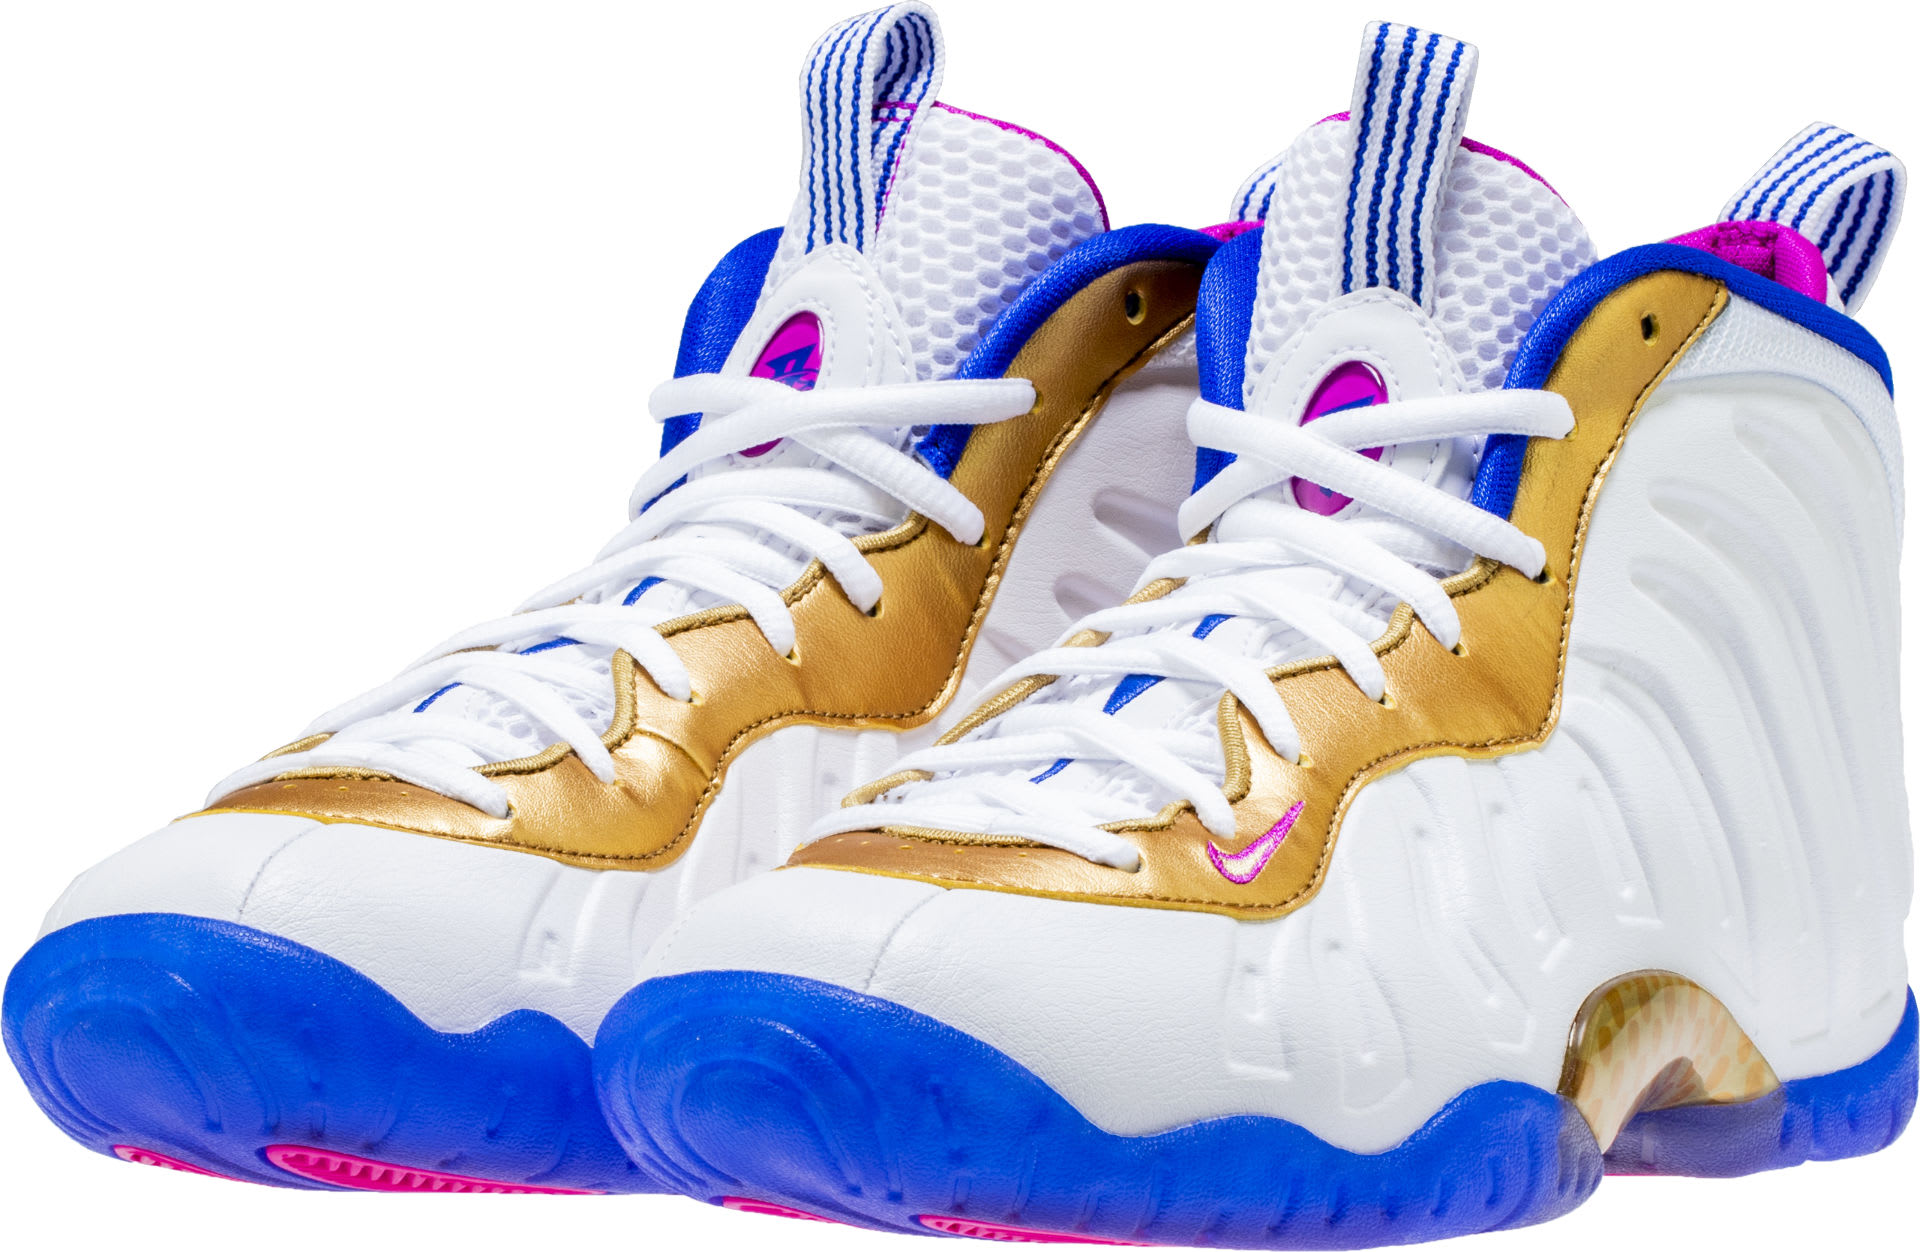 c45c900488b ... ireland nike little posite one white fuchsia blast racer blue metallic  gold release date 644791 103 top quality lebron 12 ...